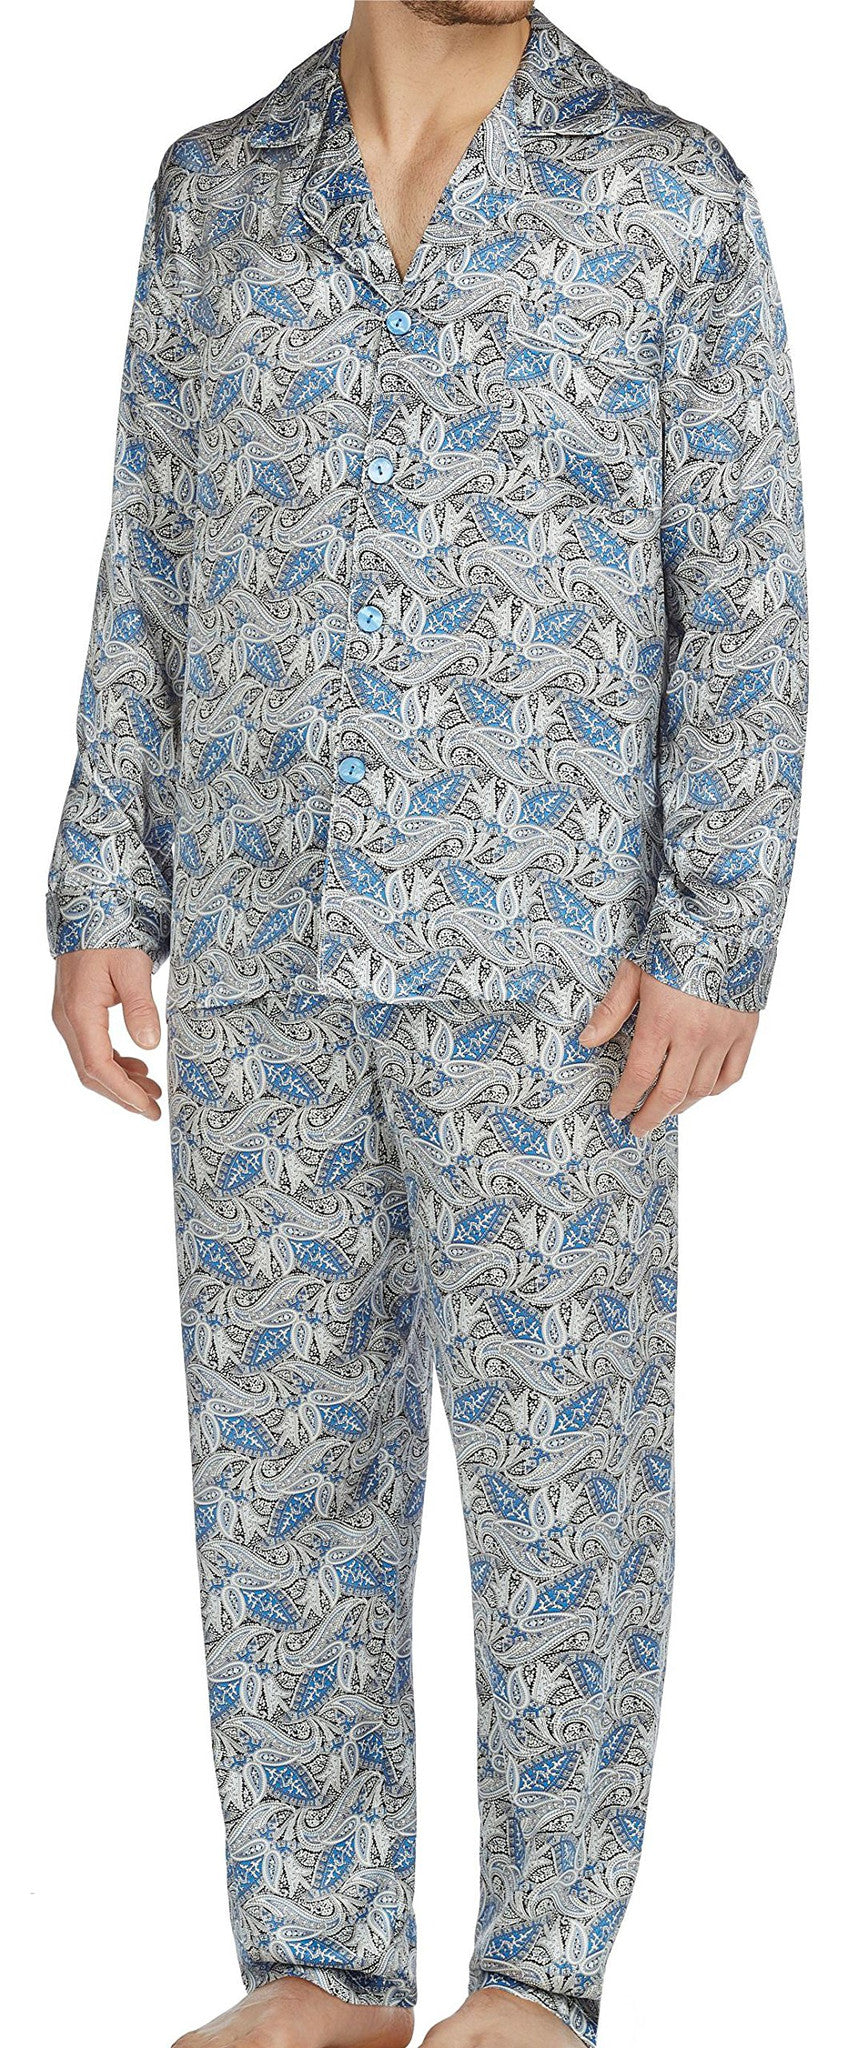 Cypress Silk Long Sleeve Pajama